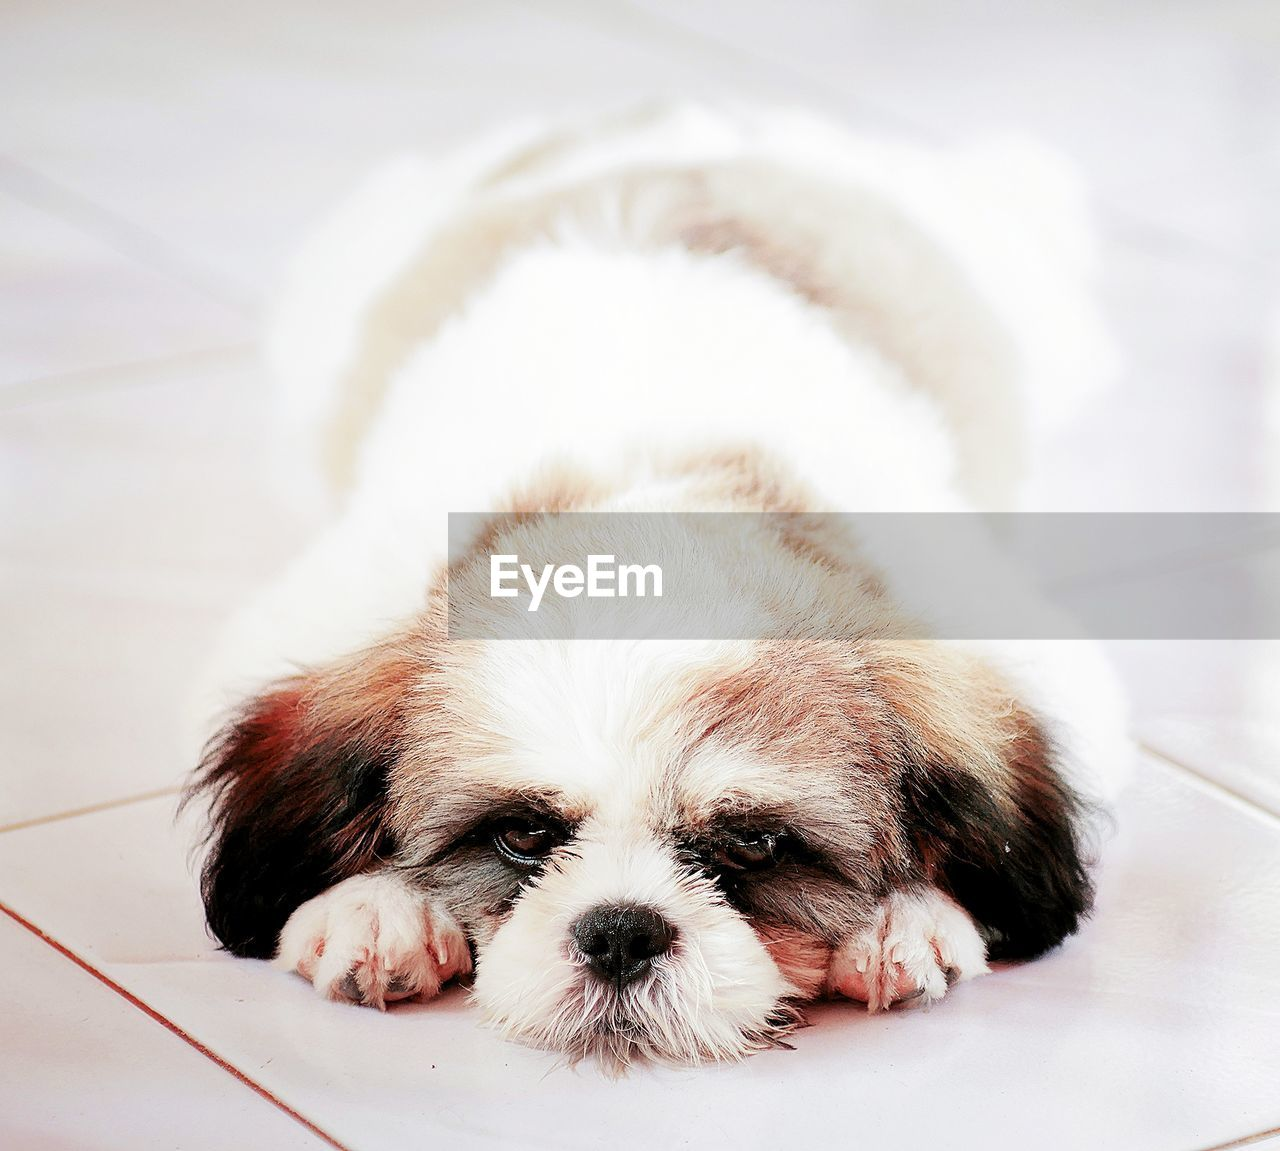 domestic, pets, domestic animals, mammal, dog, canine, one animal, animal themes, animal, relaxation, vertebrate, indoors, no people, close-up, young animal, lap dog, puppy, resting, portrait, looking at camera, small, shih tzu, animal head